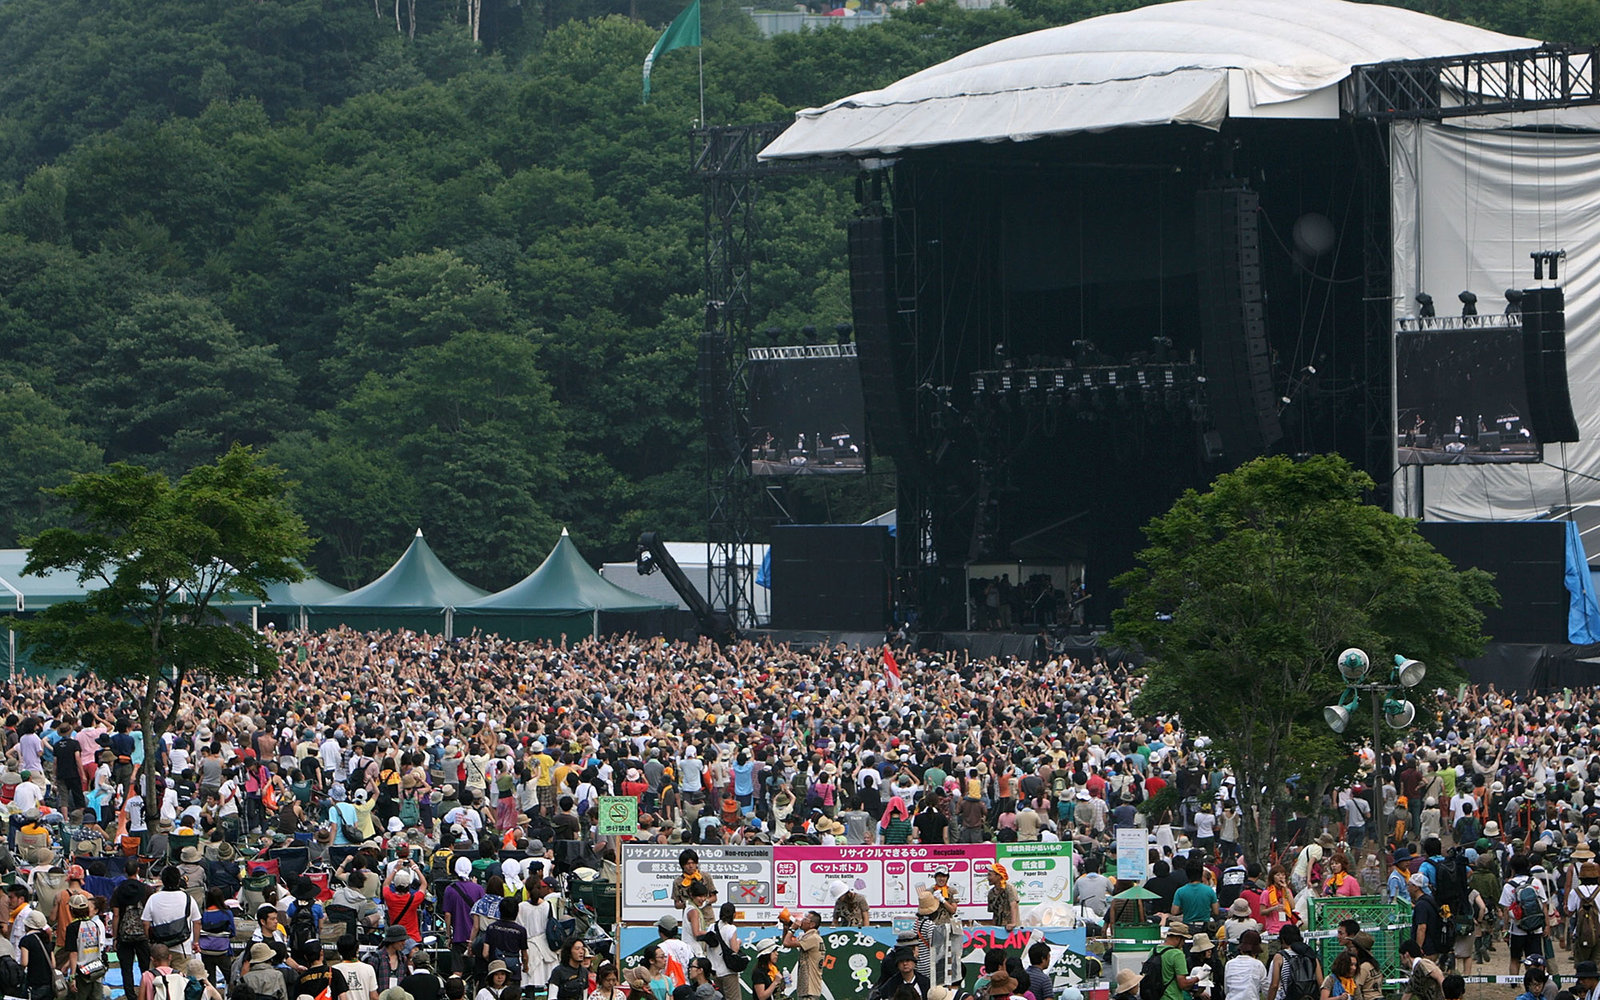 YUZAWA, JAPAN - JULY 26:  People enjoy a concert during the Fuji Rock Festival at Naeba Ski Resort on July 26, 2008 in Yuzawa, Niigata, Japan.  (Photo by Kiyoshi Ota/Getty Images)